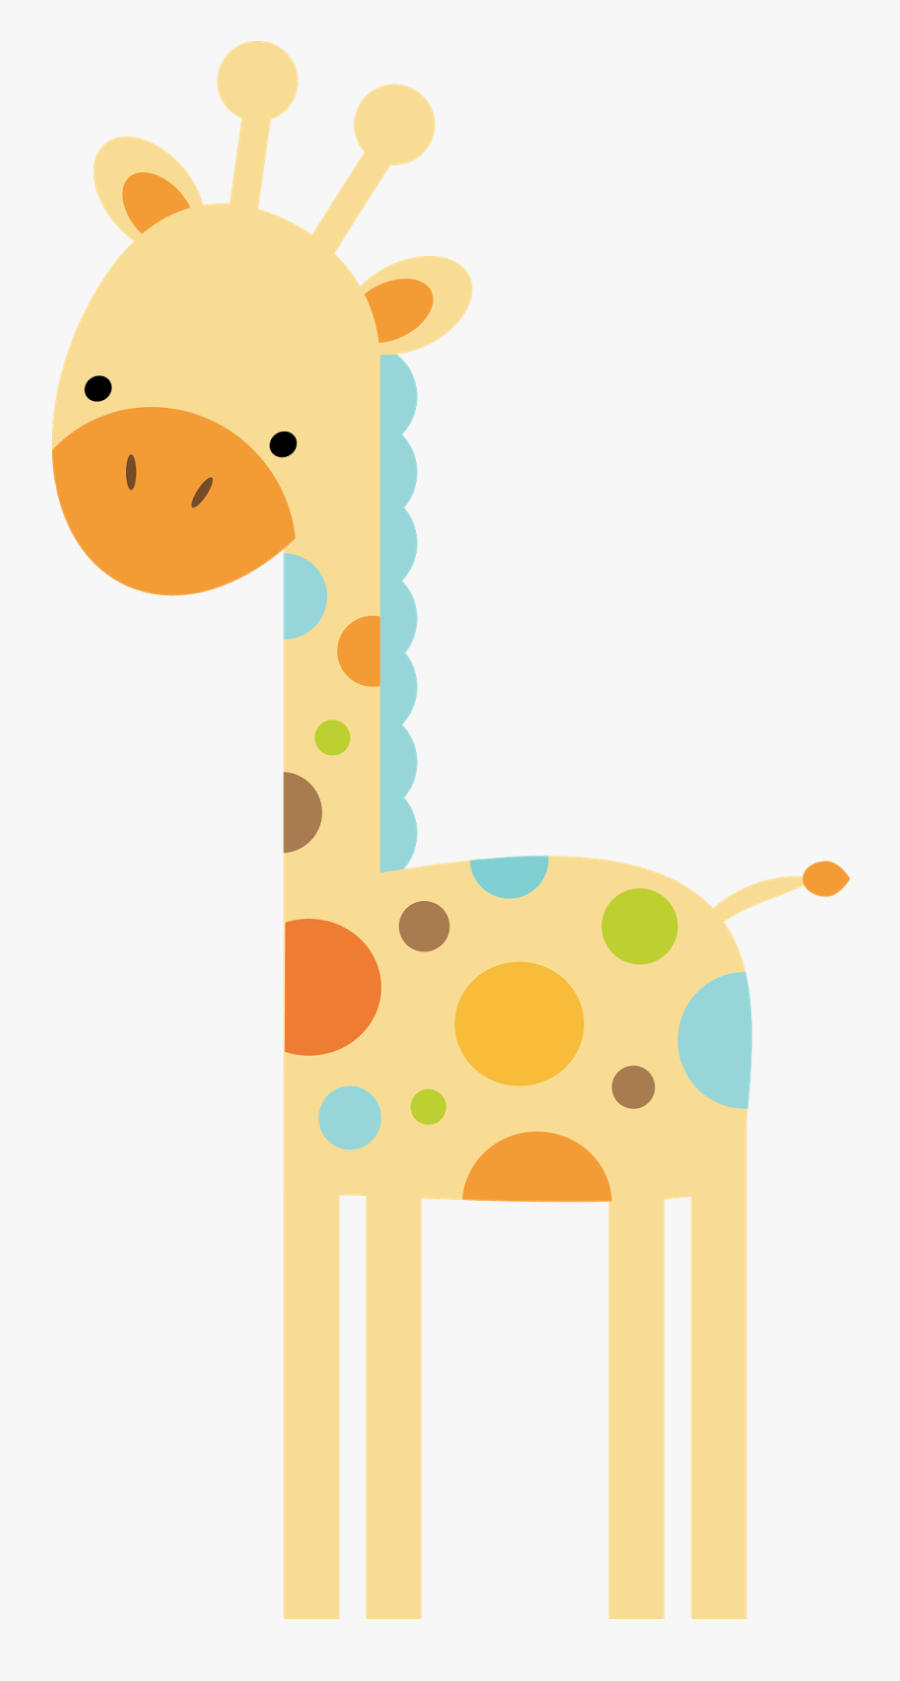 Transparent Giraffe Clip Art - Hard Baby Shower Games Animal, Transparent Clipart